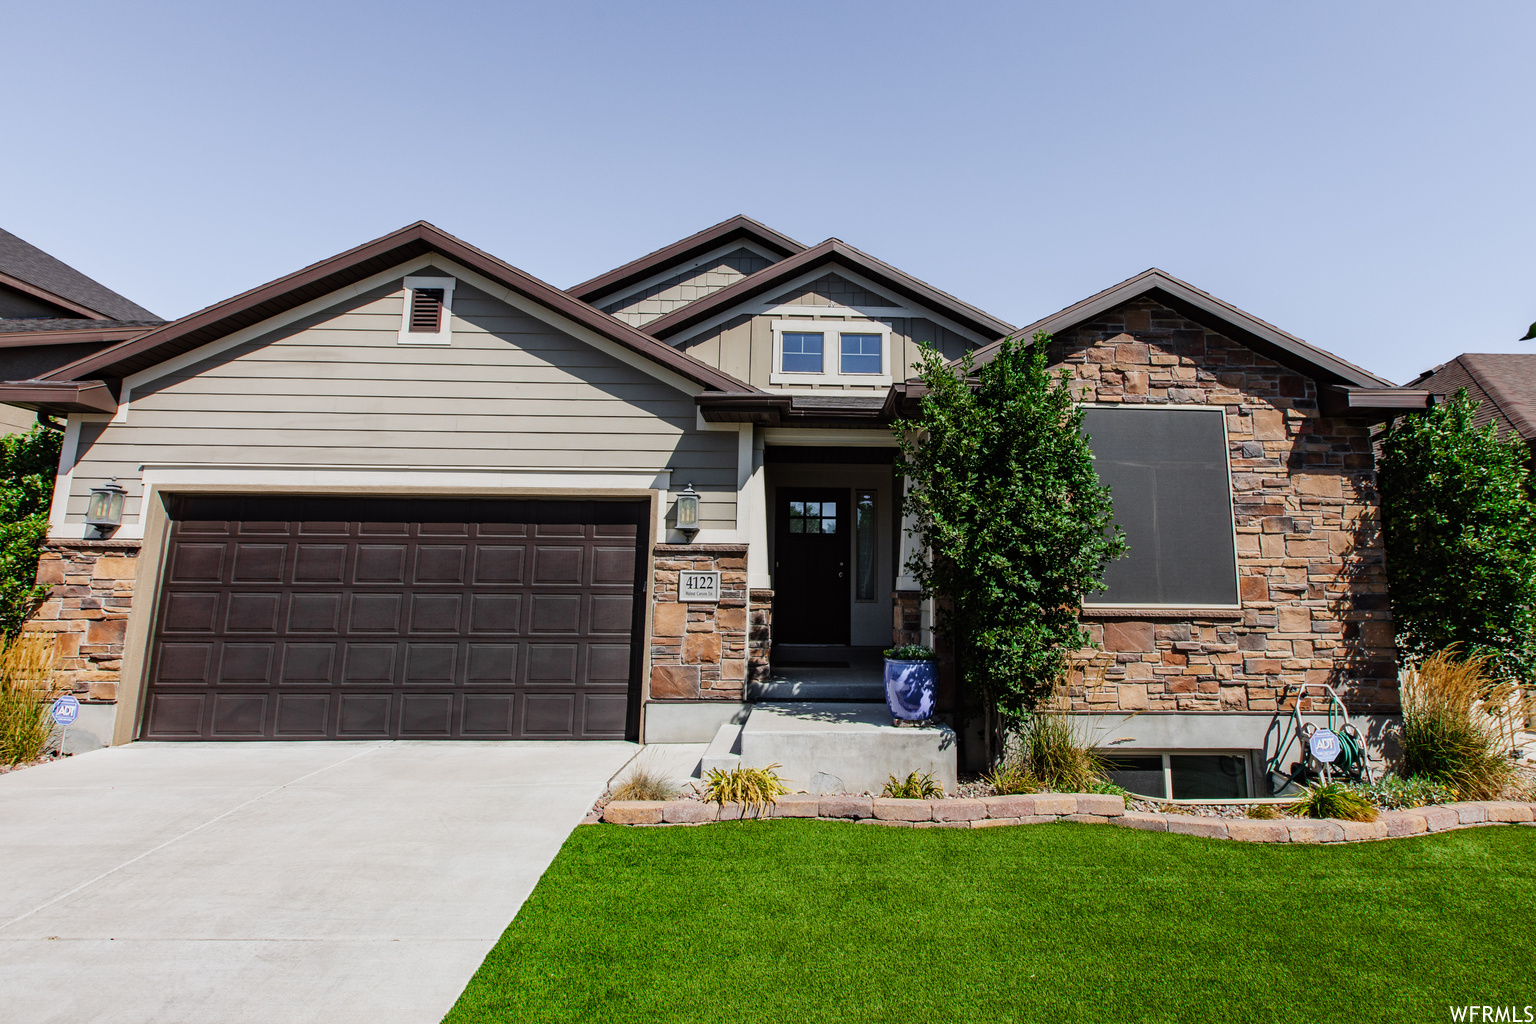 4122 W WALNUT LN, South Jordan UT 84009